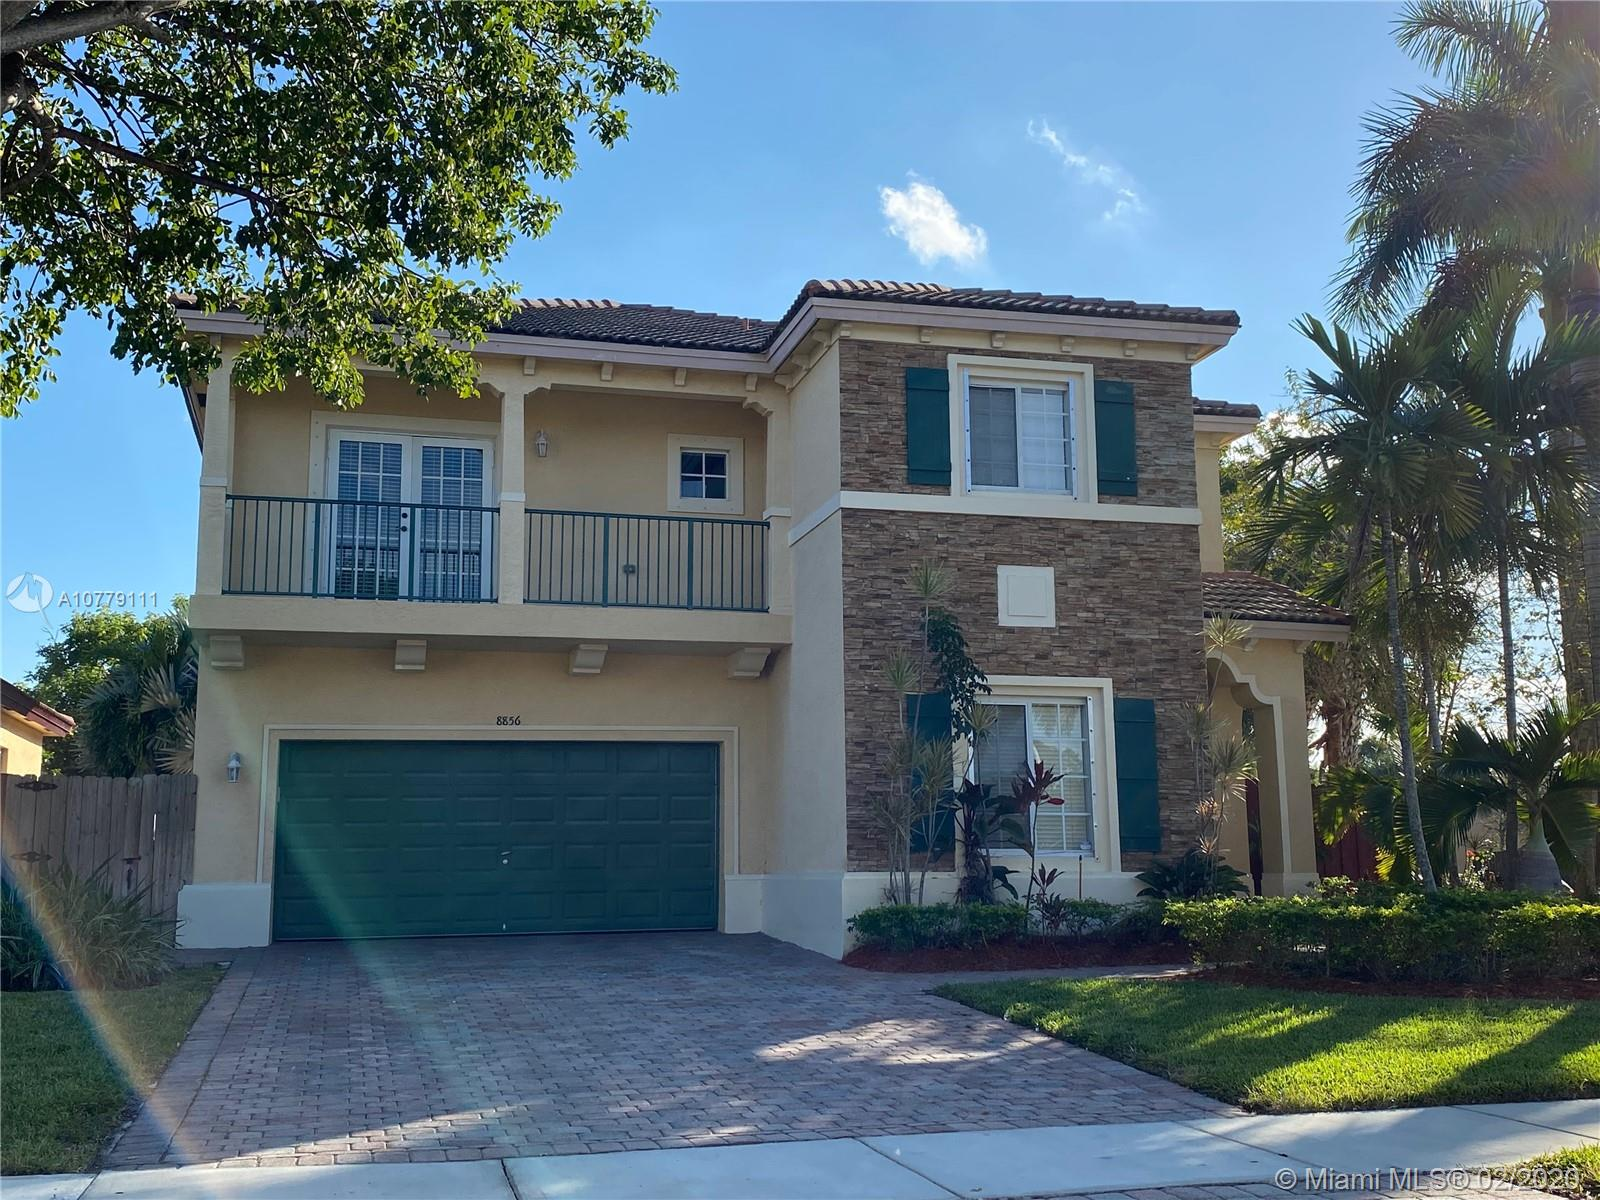 8856 SW 221st Ter  For Sale A10779111, FL